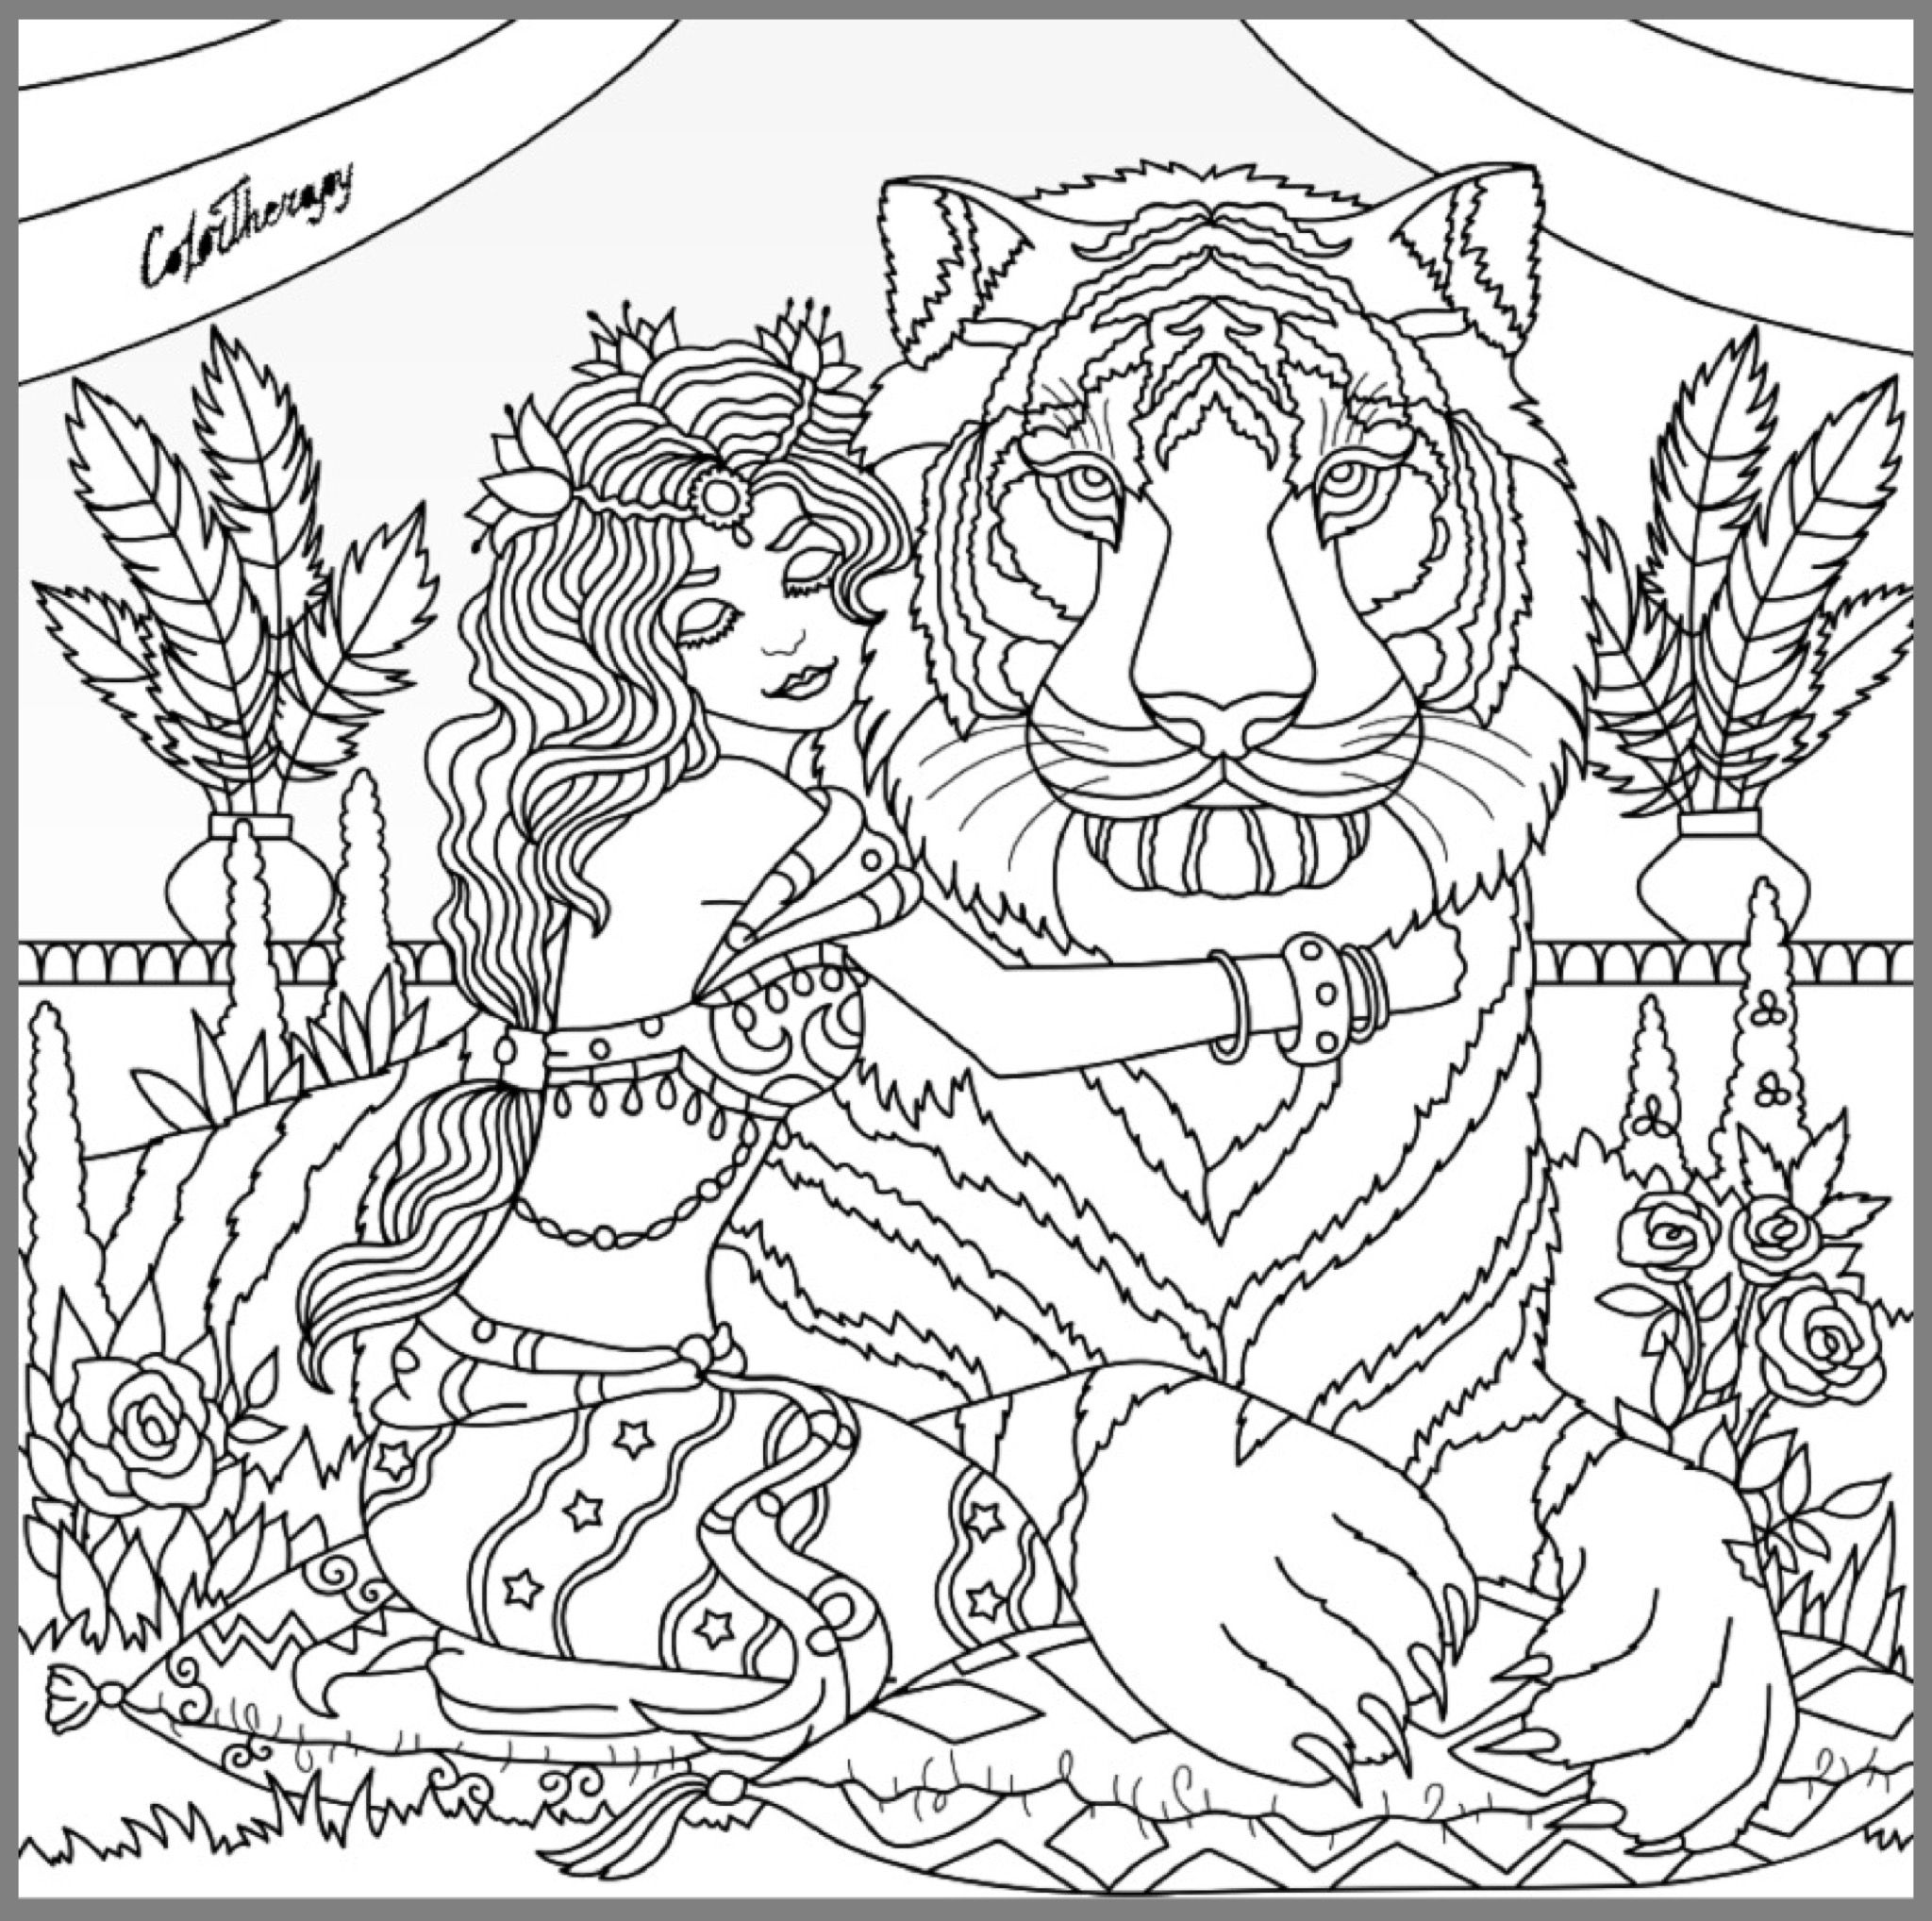 King of the Jungle coloring page | Coloring Pages for Adults ...